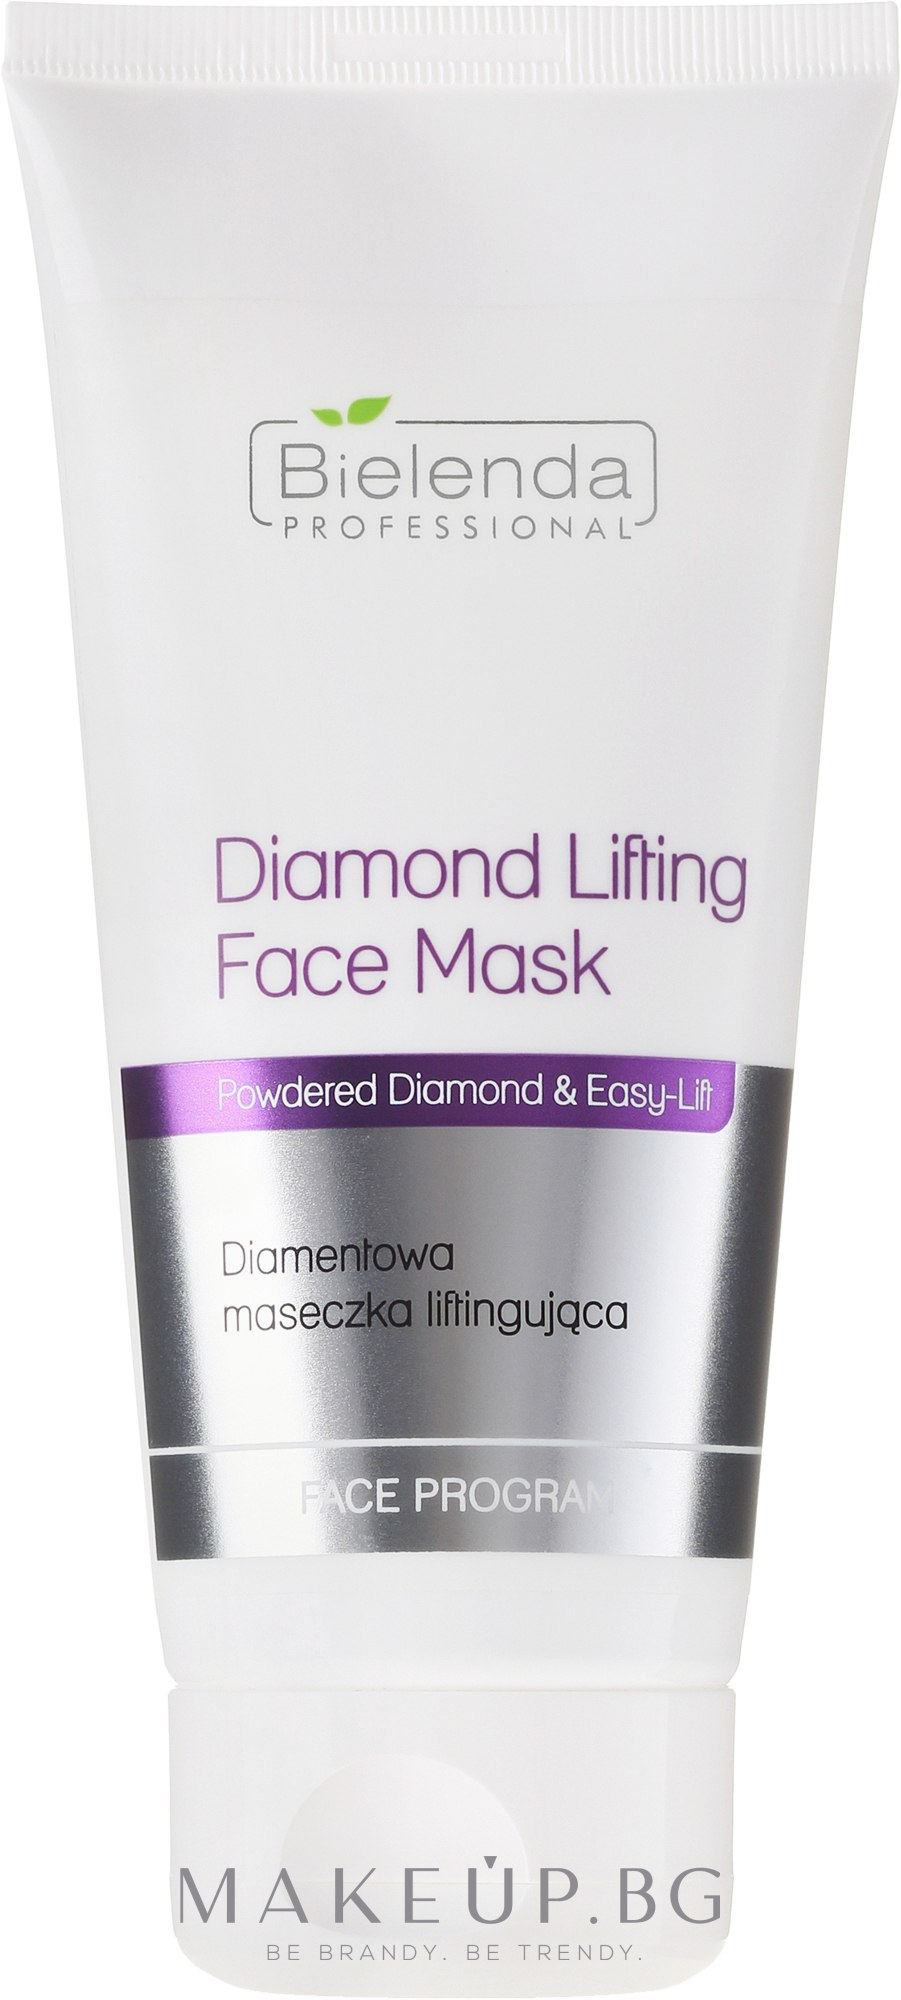 Диамантена маска за лице - Bielenda Professional Face Program Diamond Lifting Face Mask — снимка 175 ml